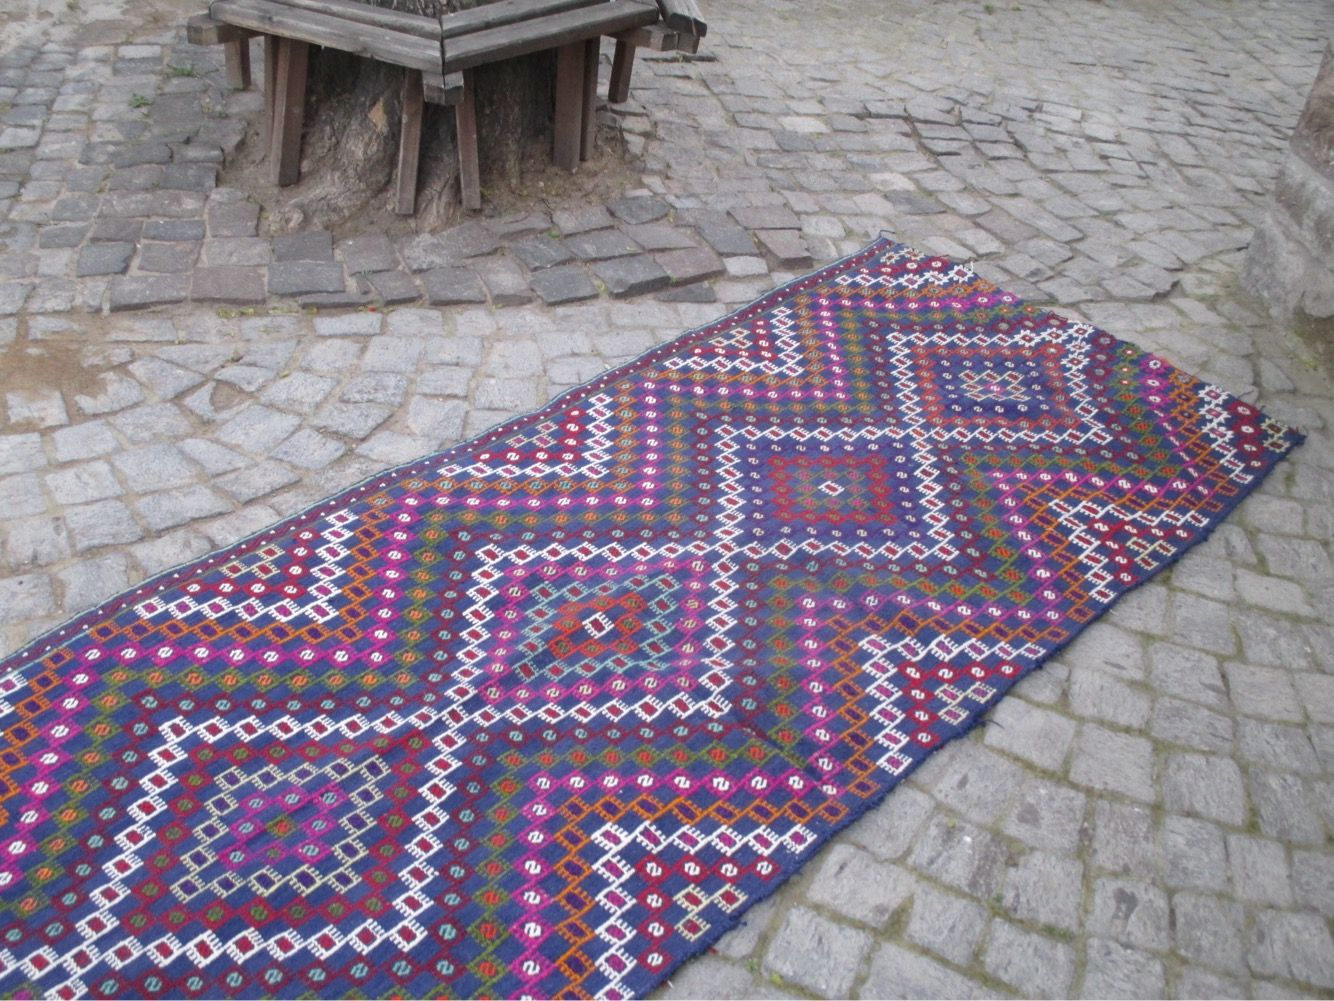 "50 % OFF! HANDMADE TURKISH KILIM RUNNER, 286 x 105 cm (112"" x 41.3"")"